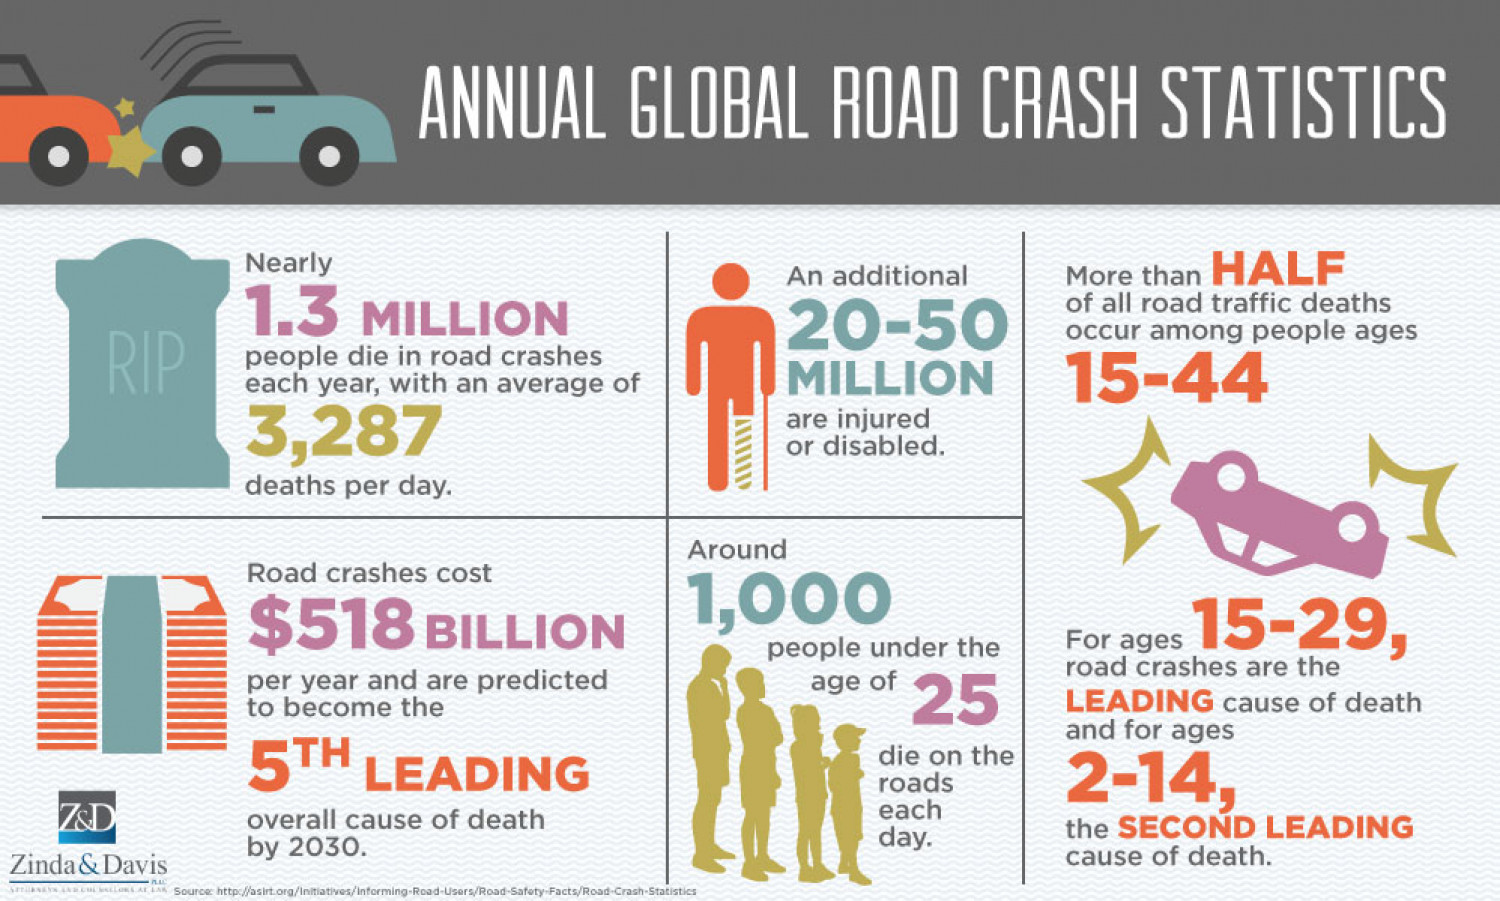 Annual Global Road Crash Statistics | Visual.ly